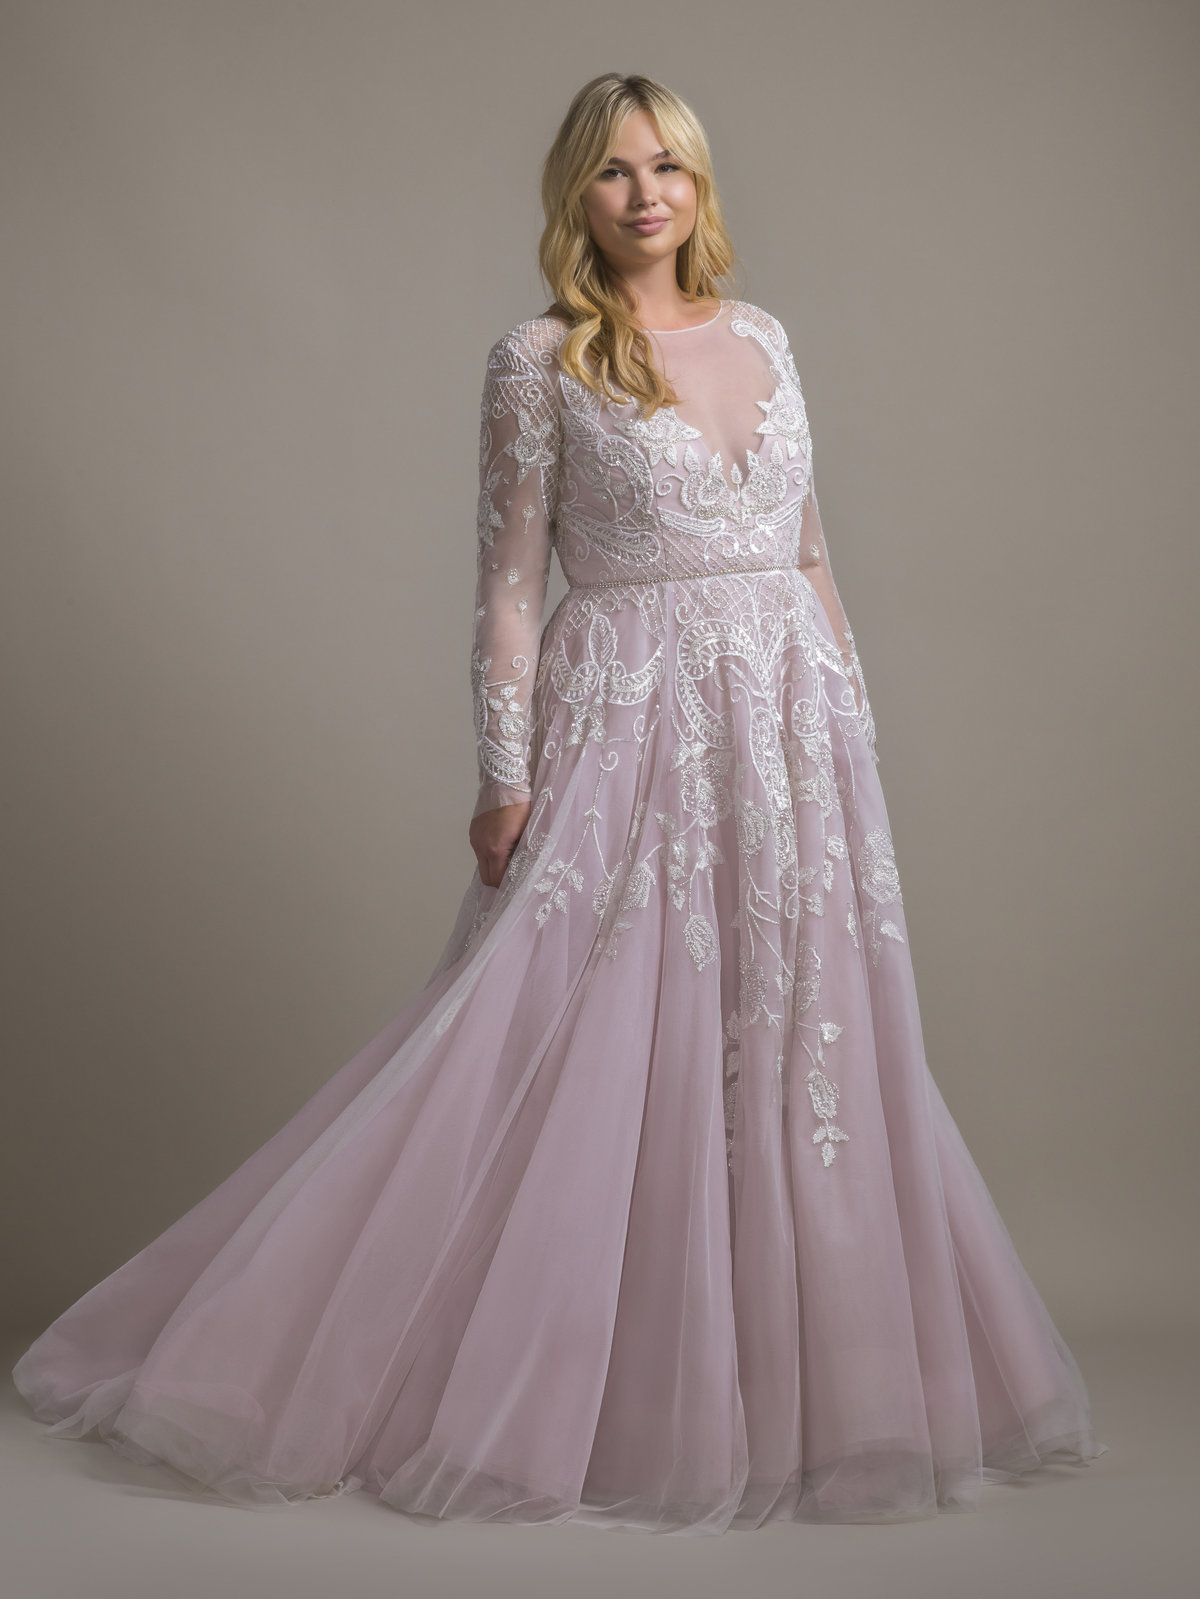 Shades of Slay: Colored Wedding Gowns from JLM Couture